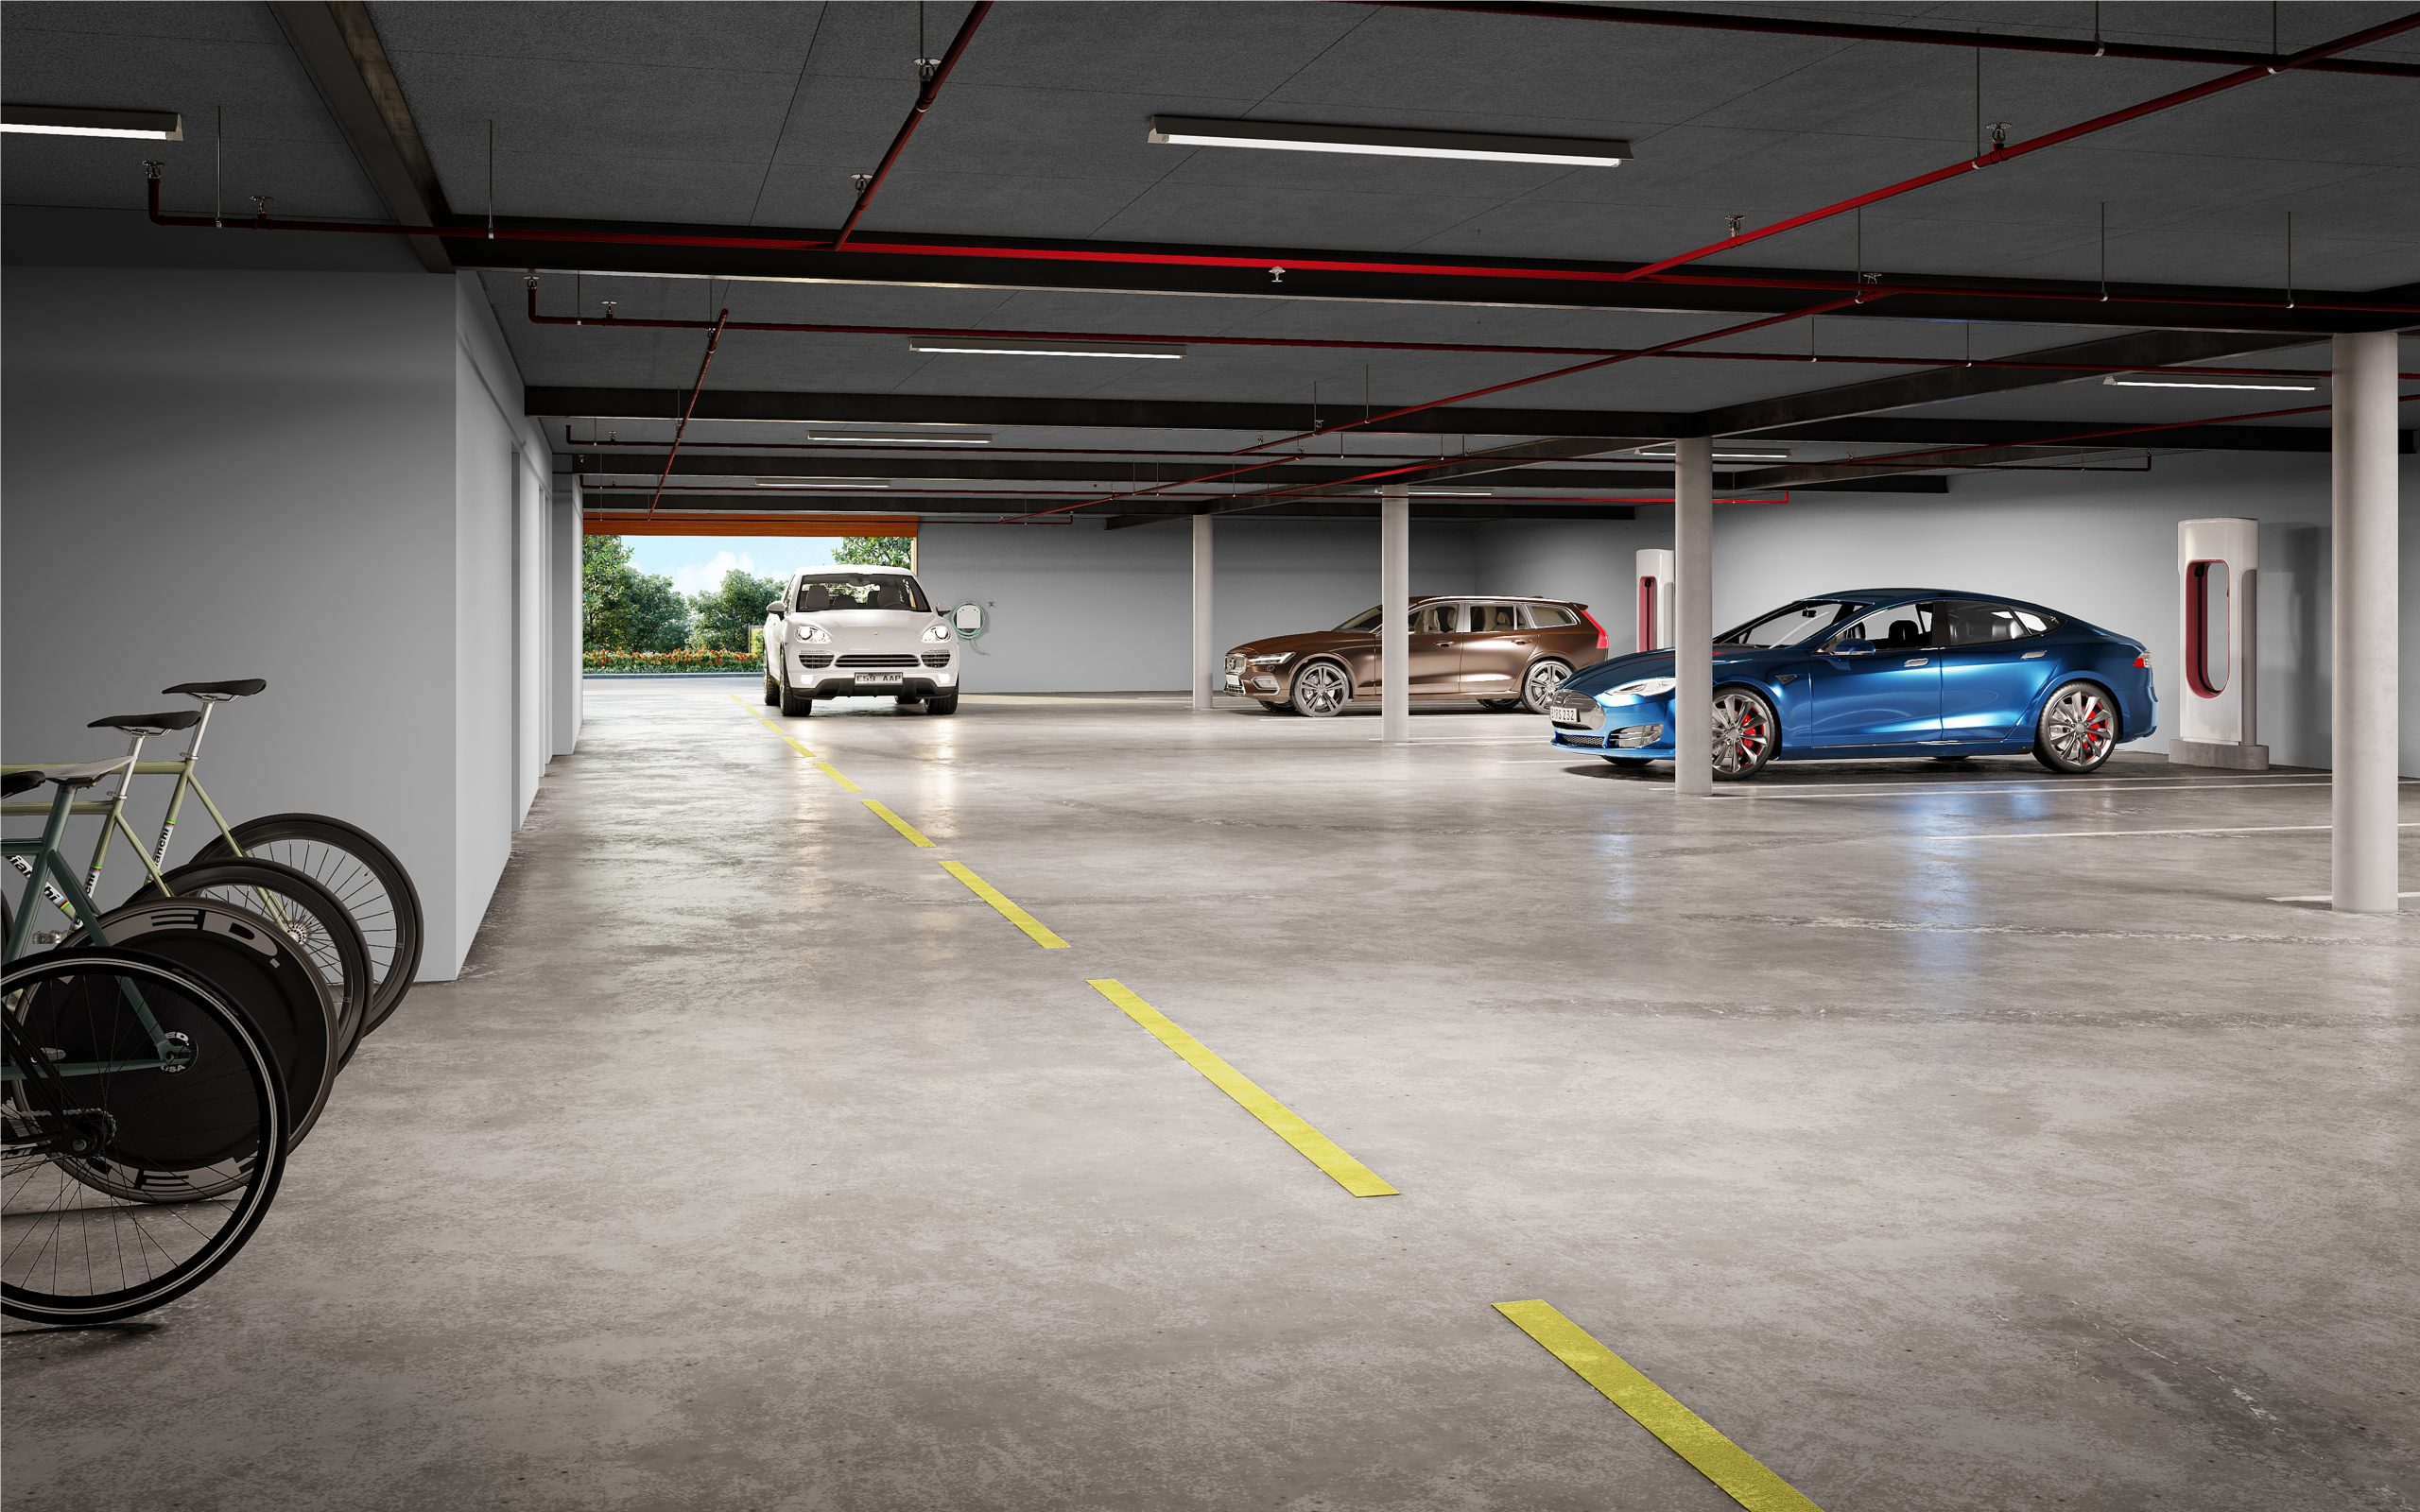 Garage underground electric vehicle charging